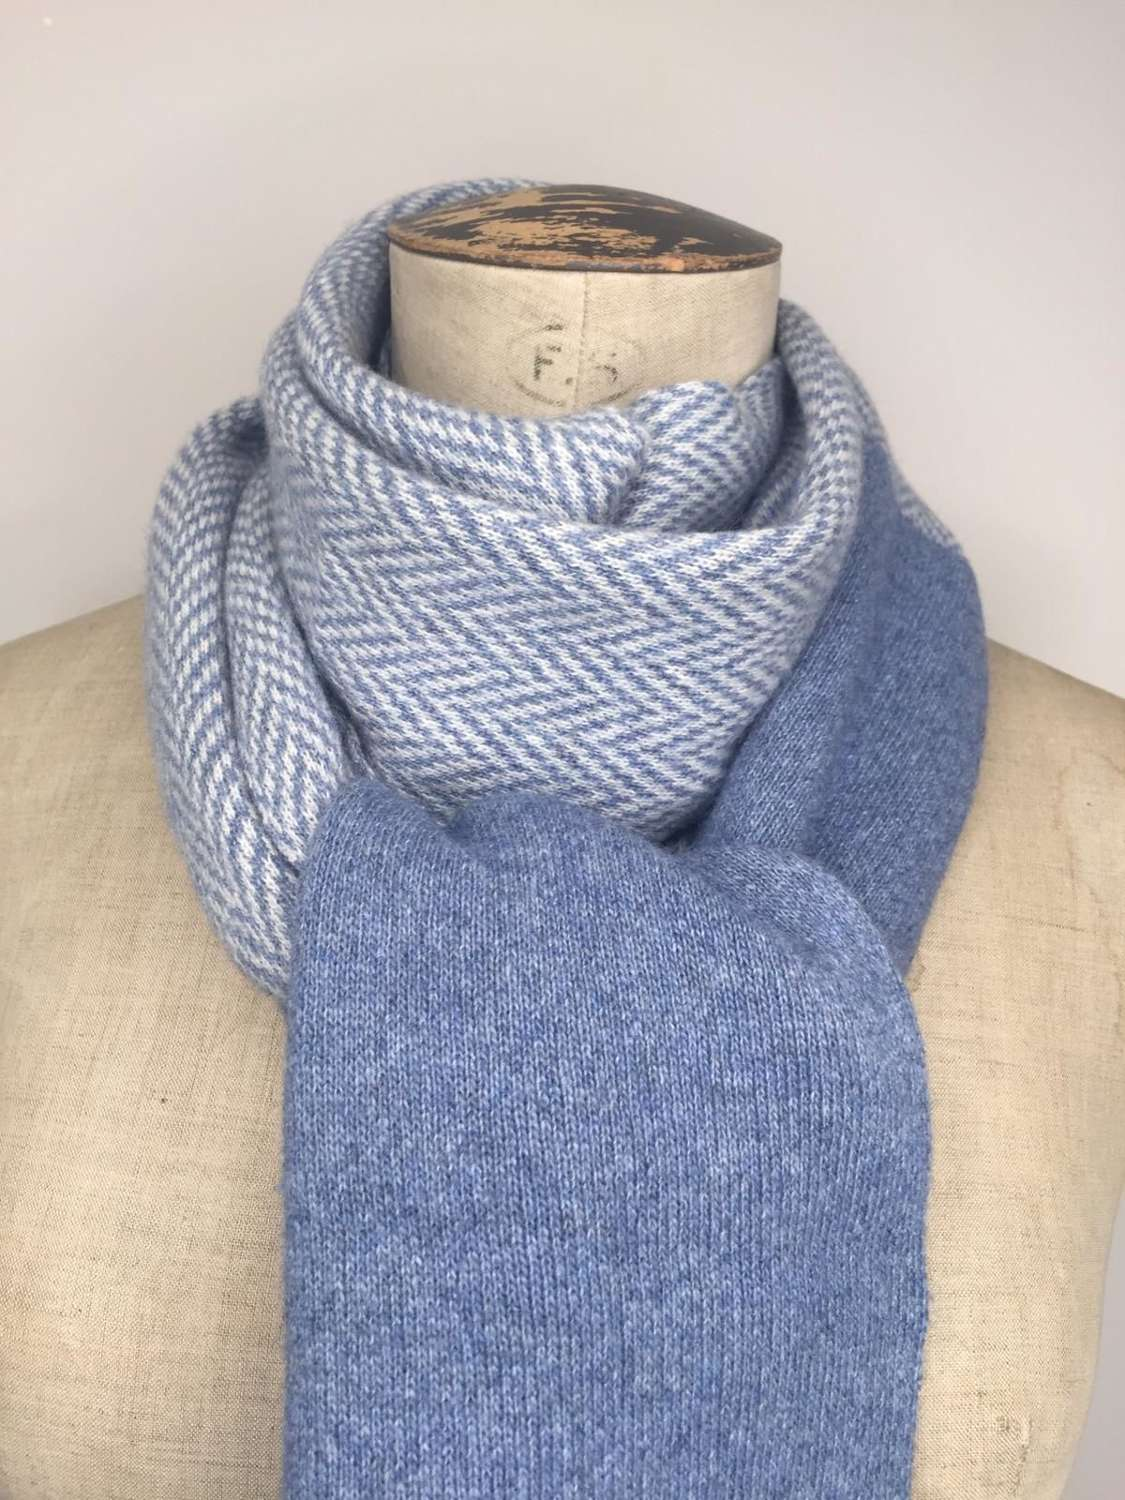 Herringbone Scarf - available in grey and blue